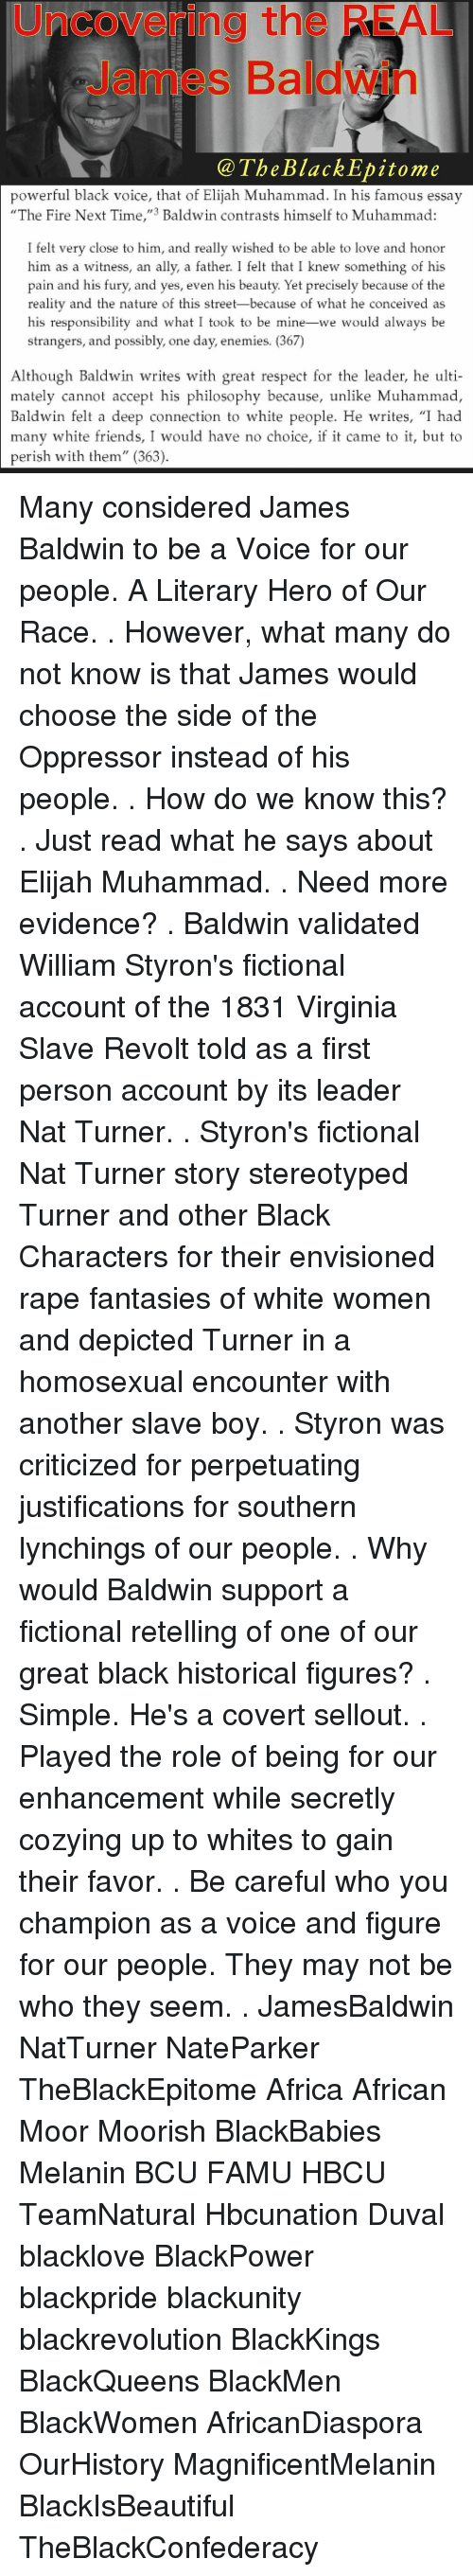 essay nat turner